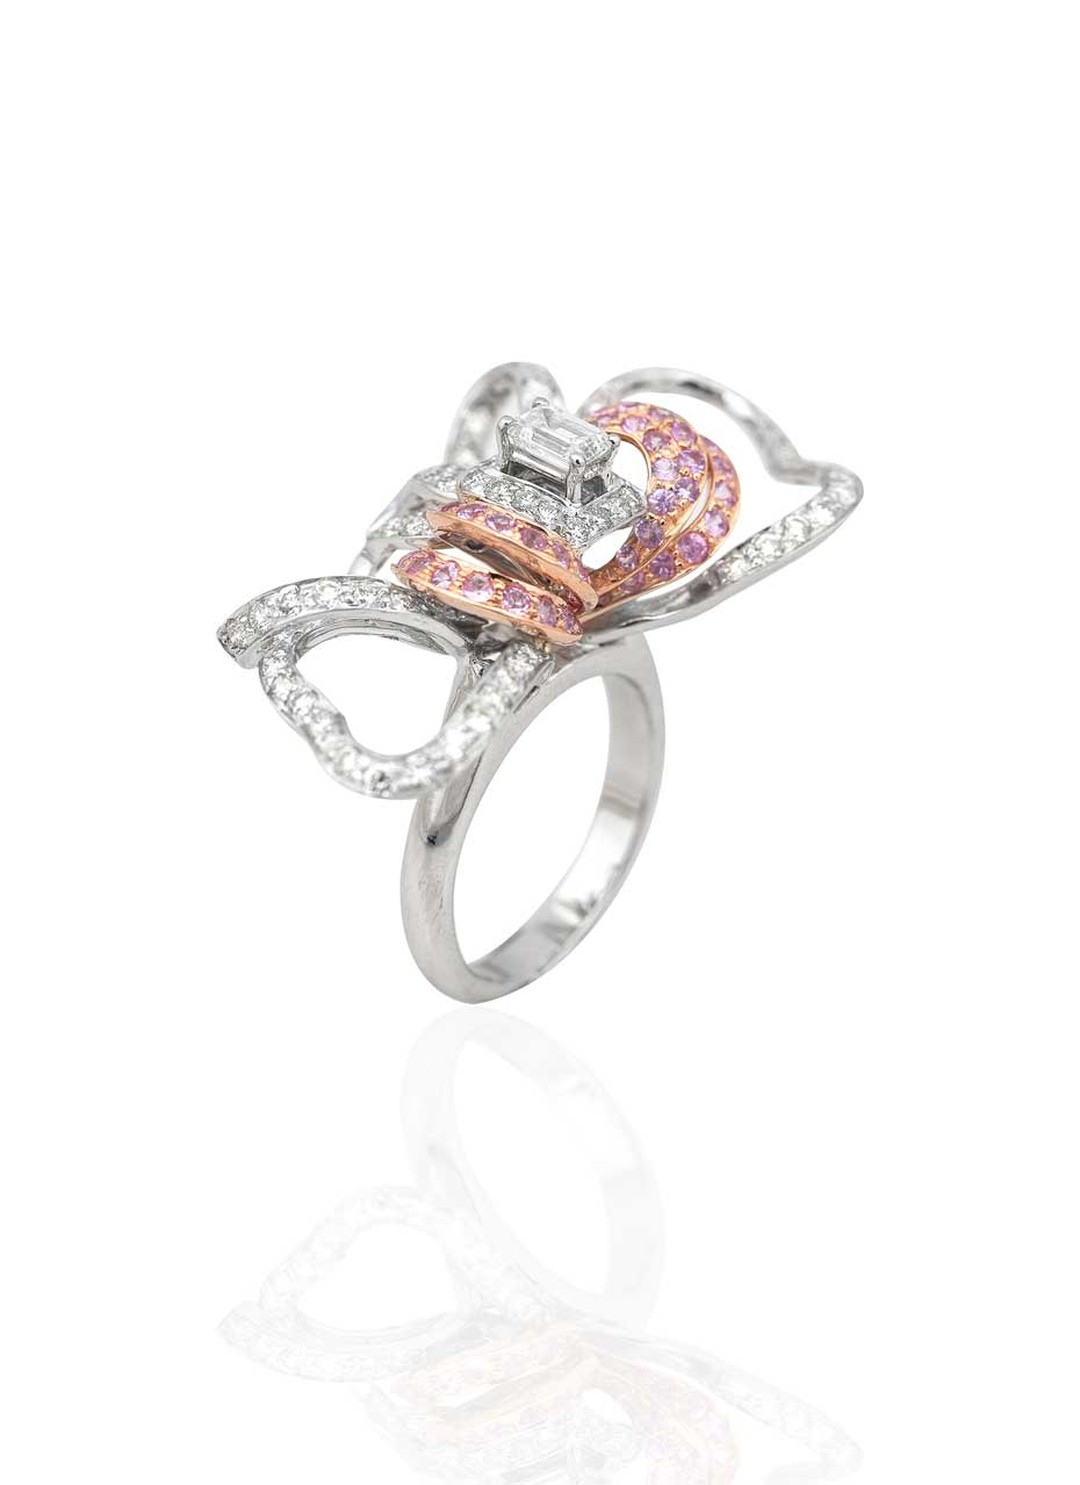 Mirari ring in white and rose gold, set with an emerald-cut diamond, round brilliant diamonds and pink sapphires.